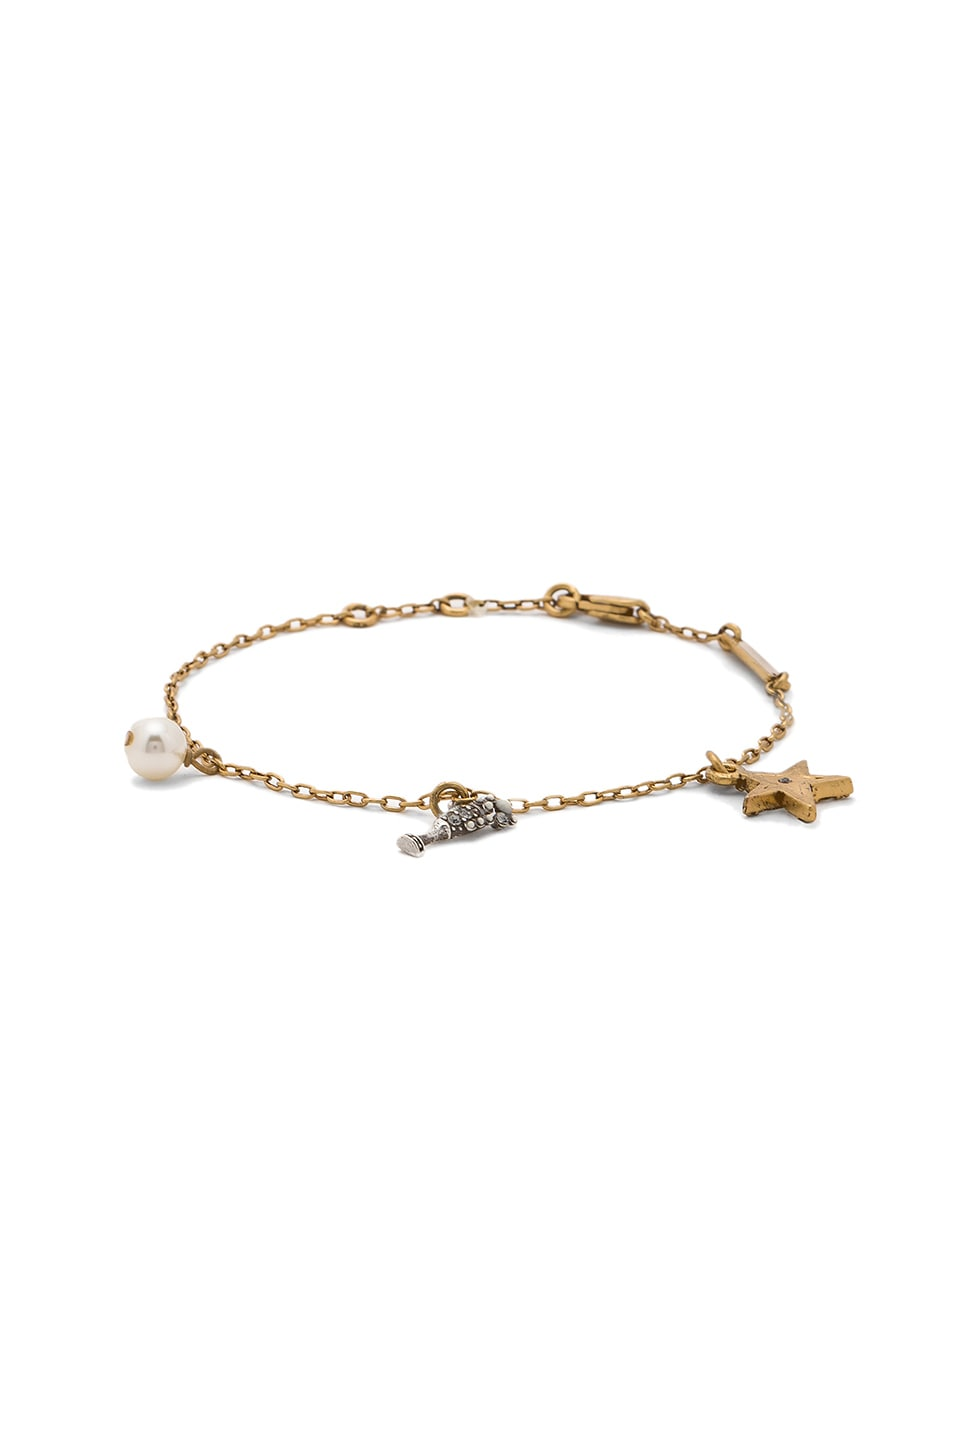 Champagne Flute Chain Bracelet by Marc Jacobs